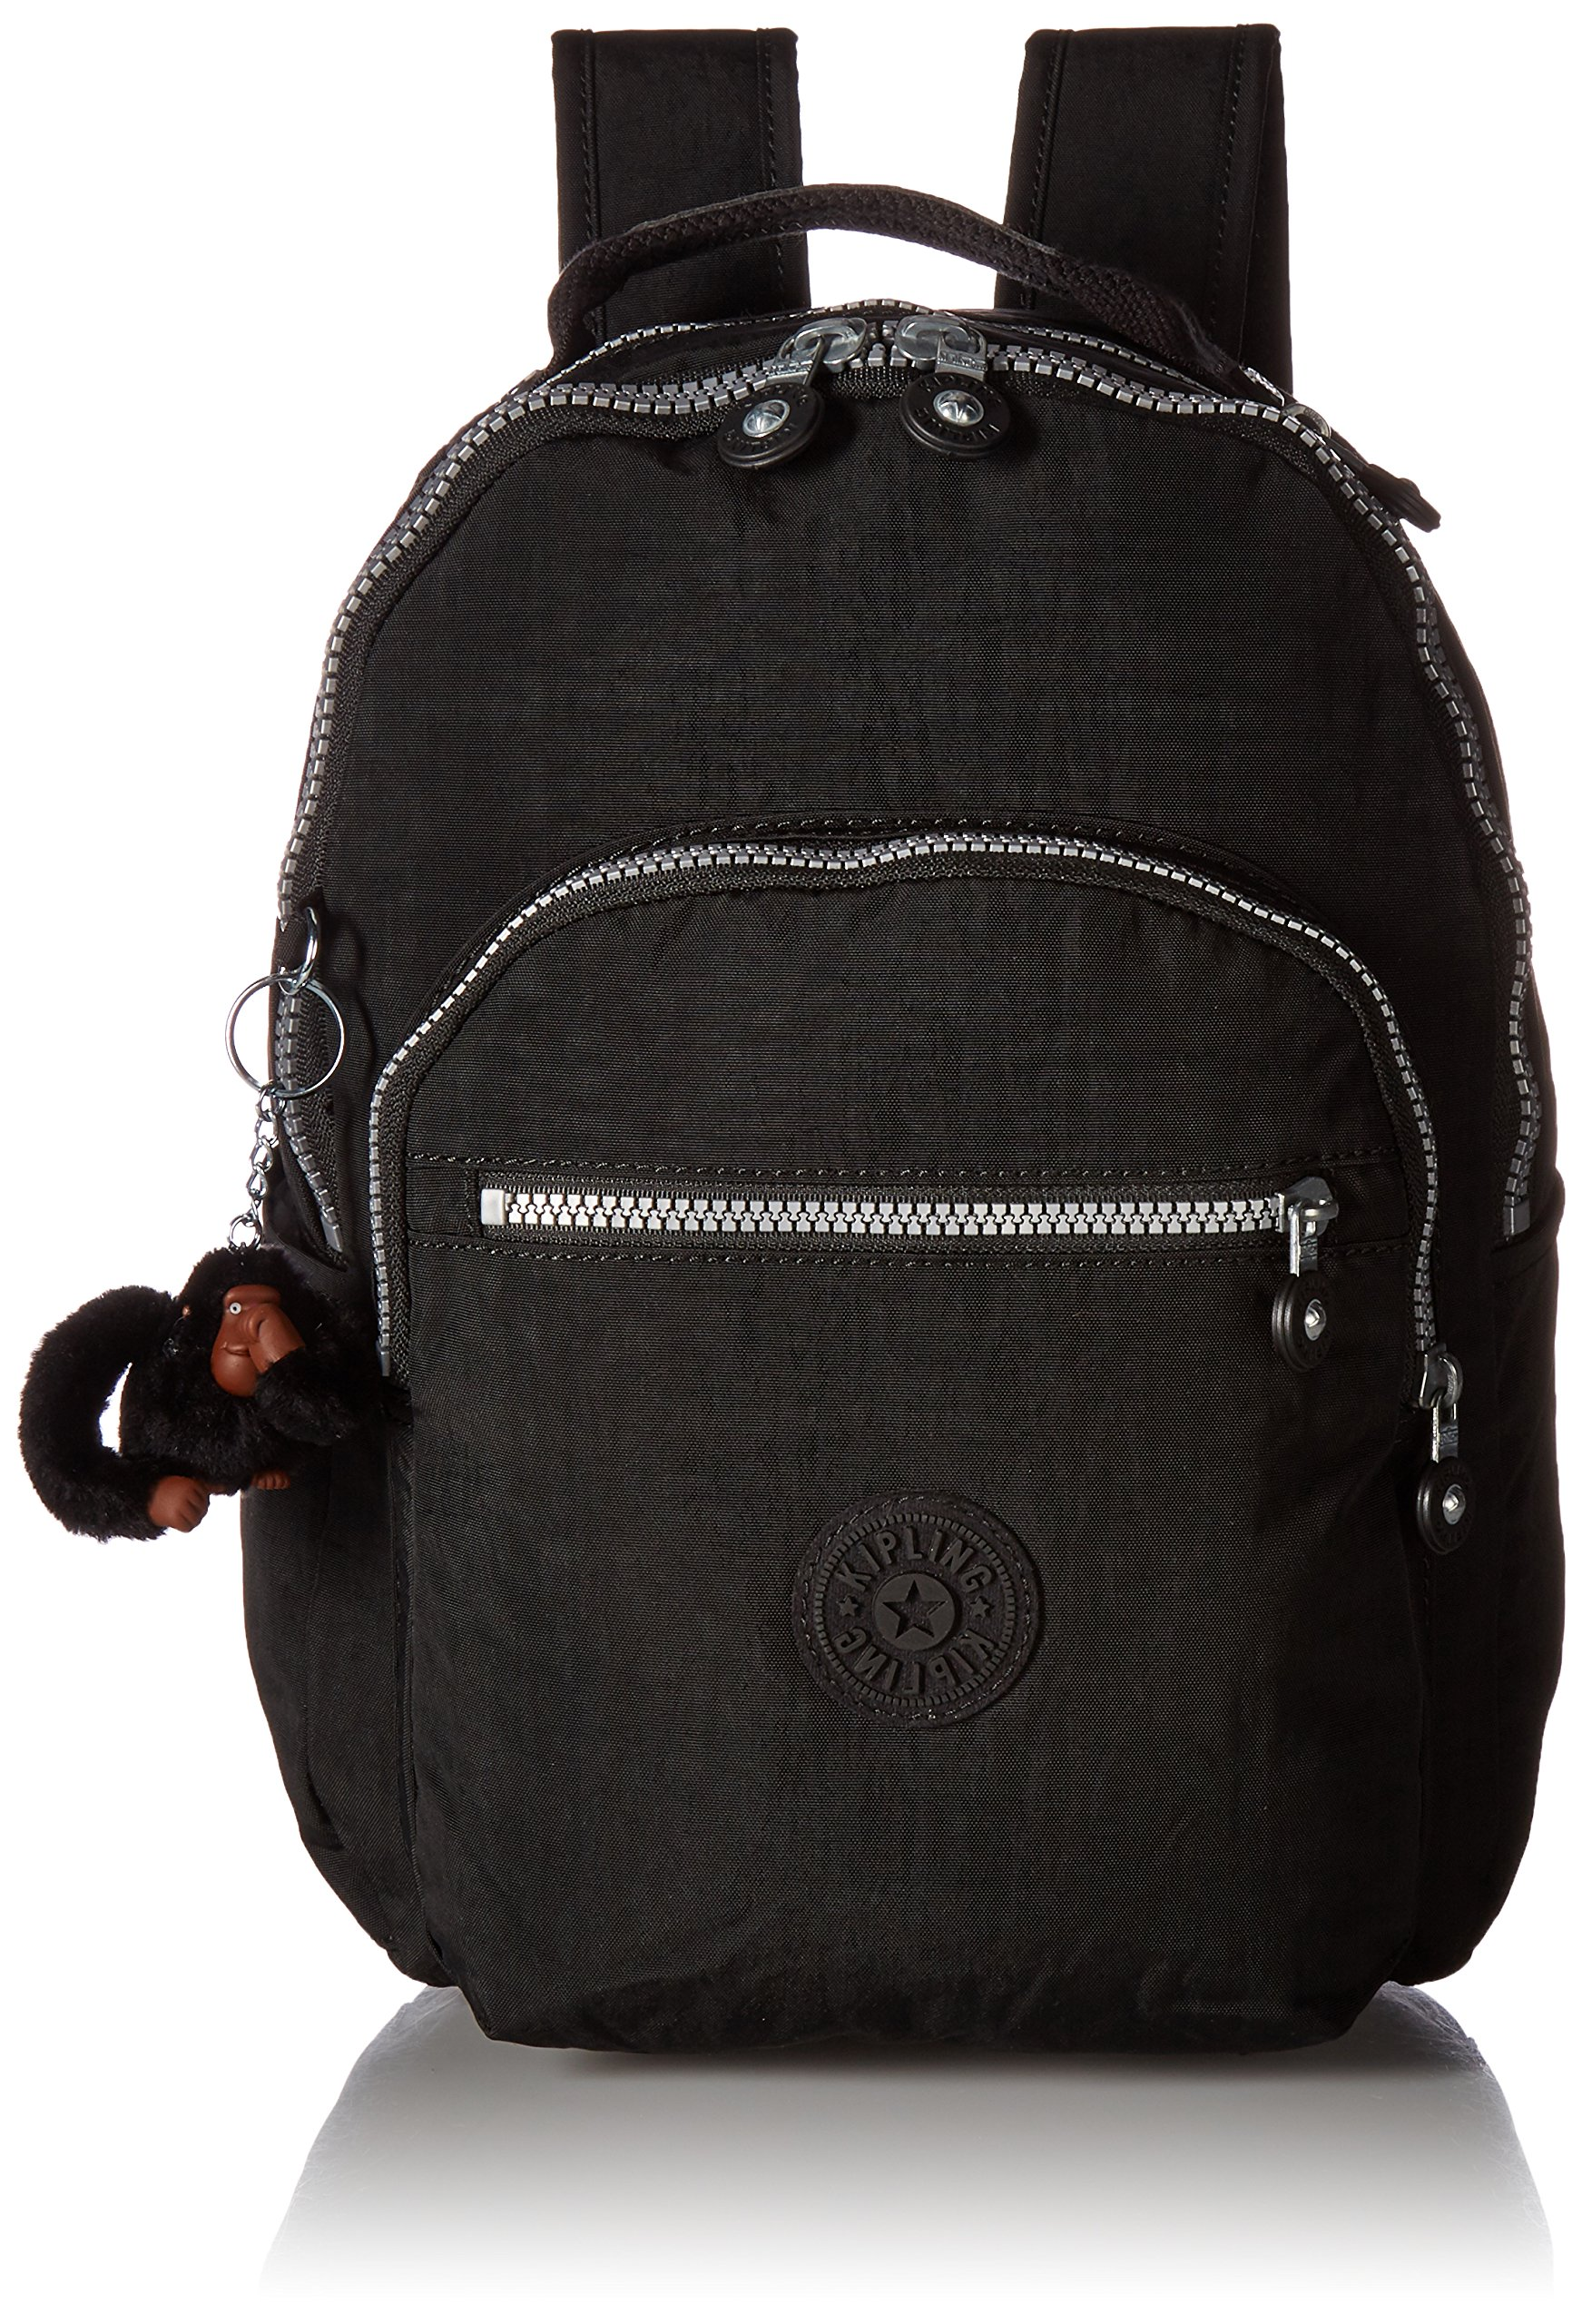 Kipling Seoul Small, Black by Kipling (Image #1)